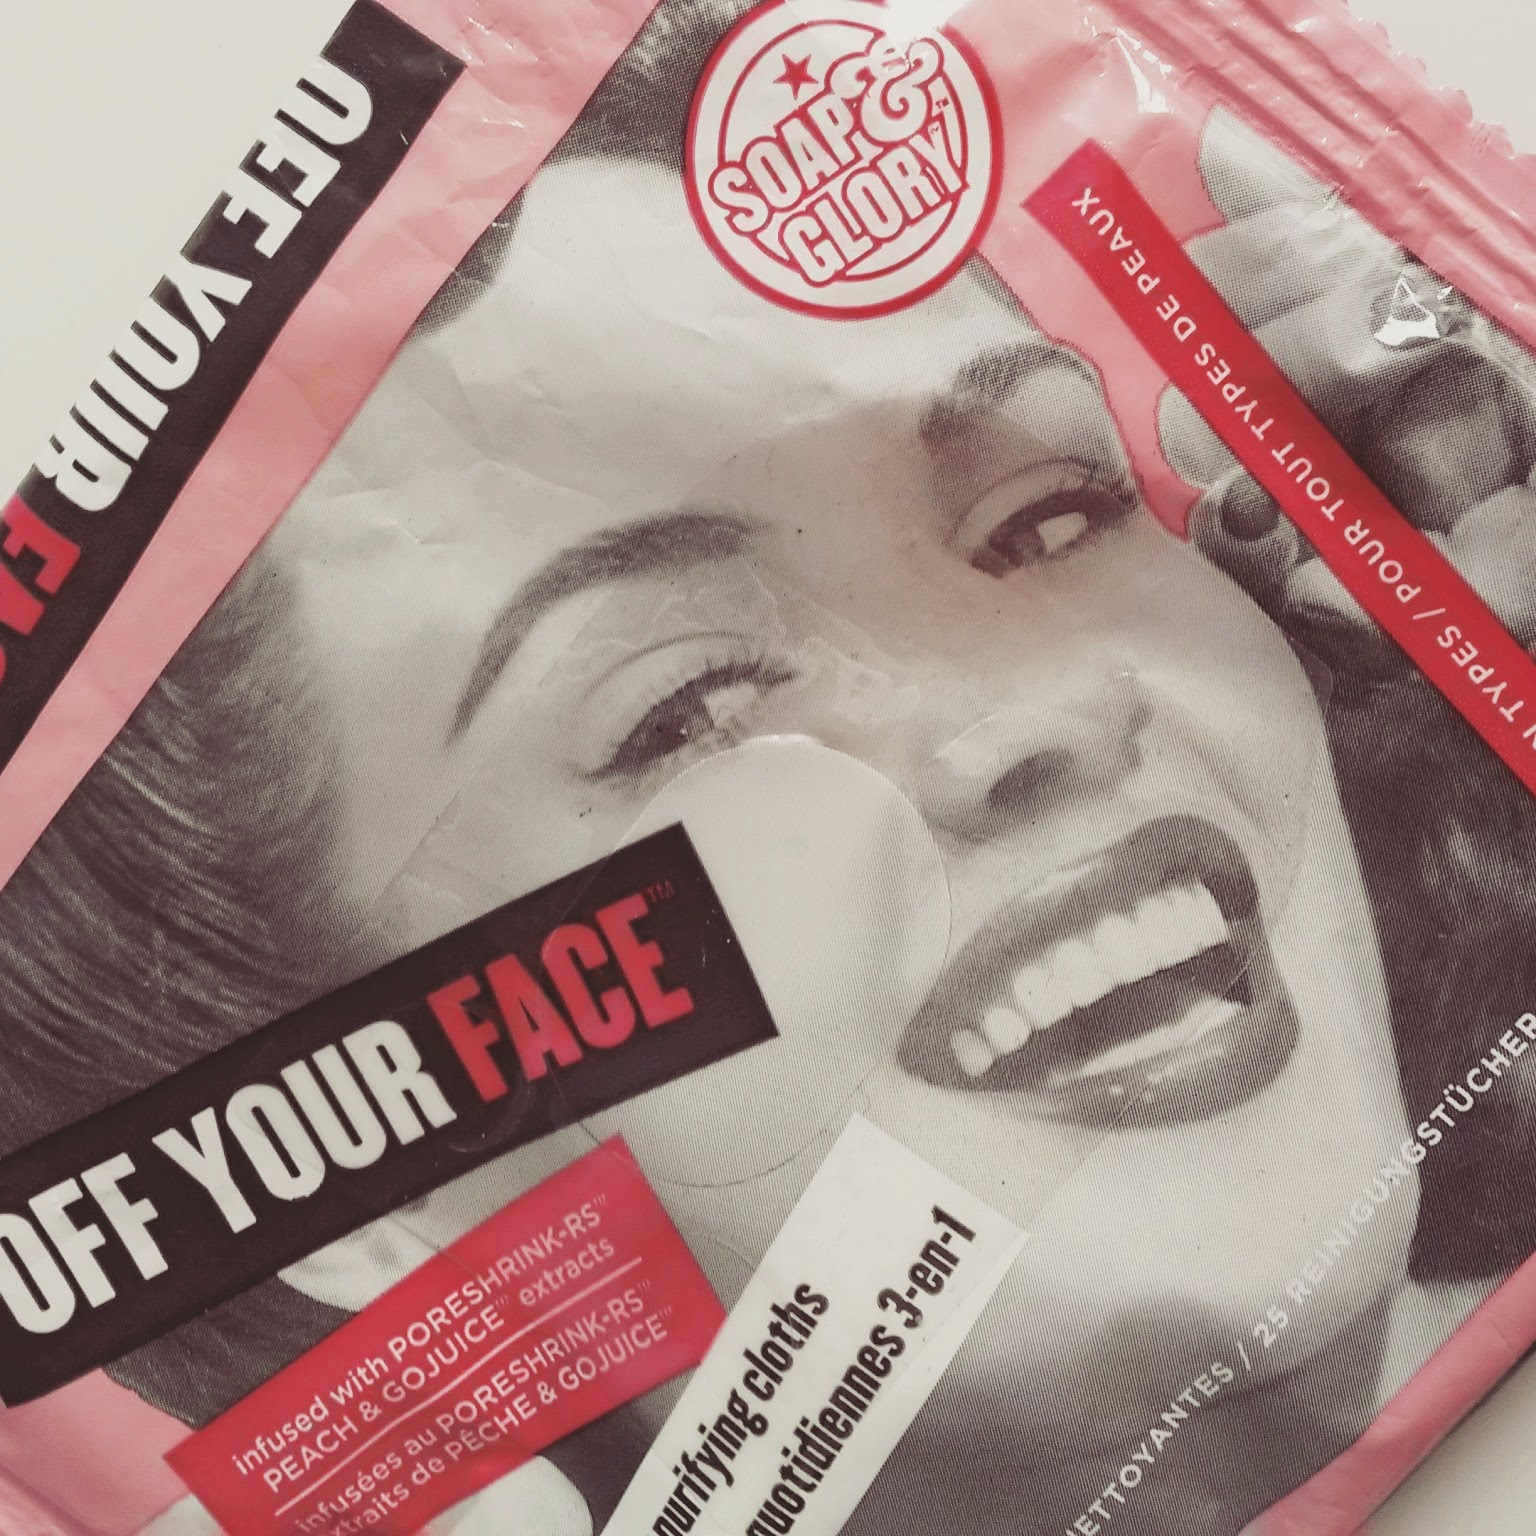 Soap and Glory off your face wipes